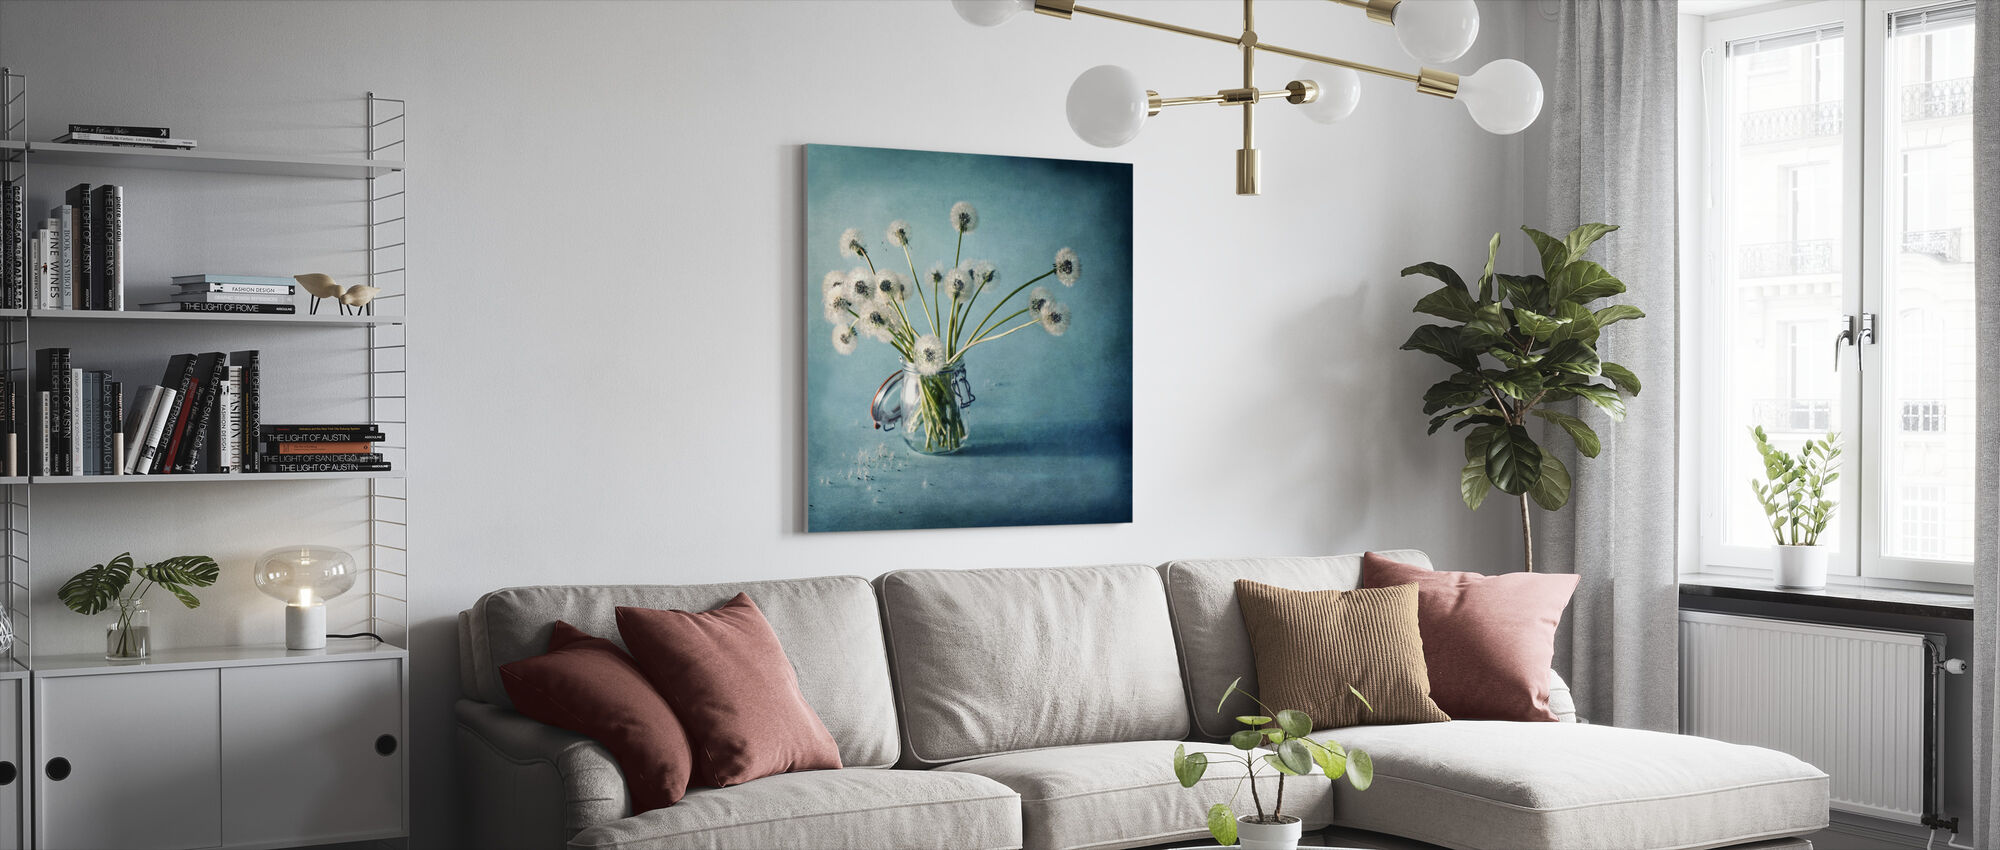 Storing Wishes - Canvas print - Living Room